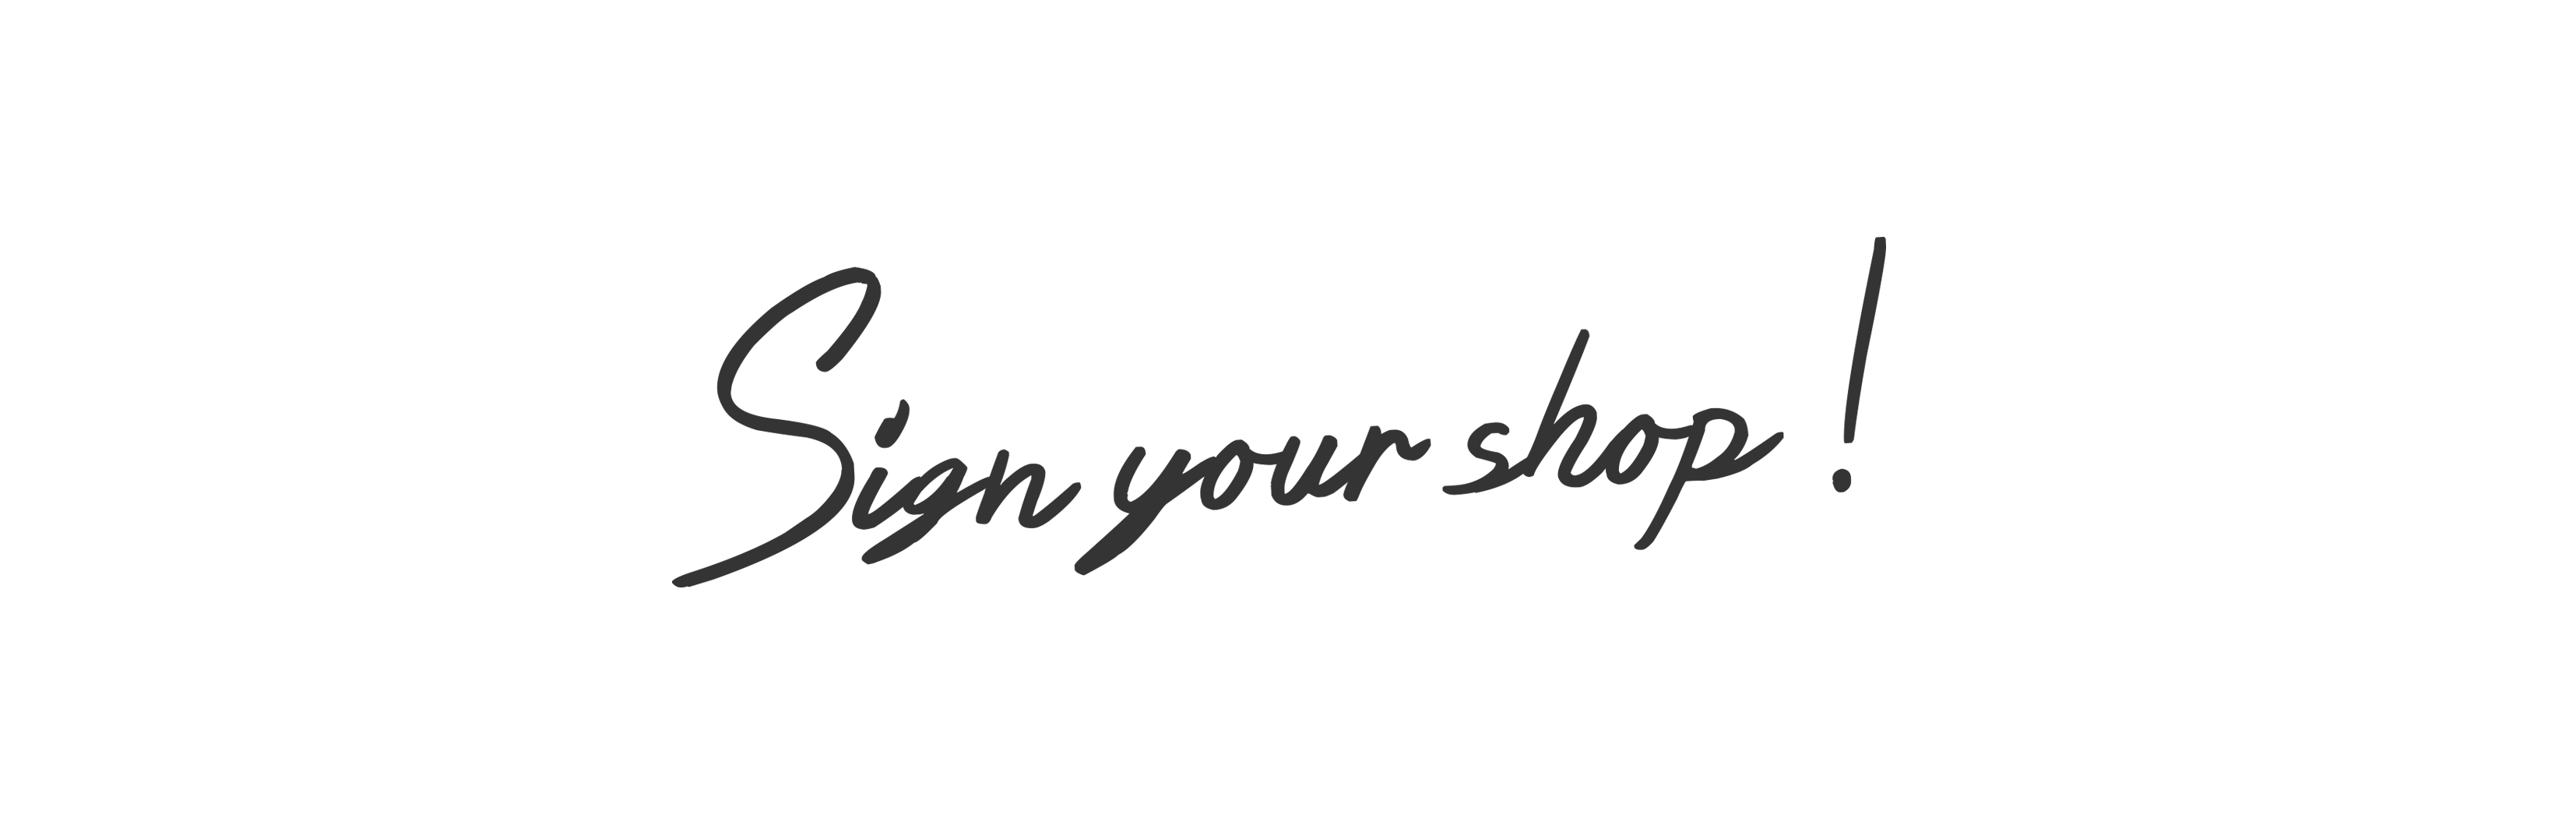 Sign your shop